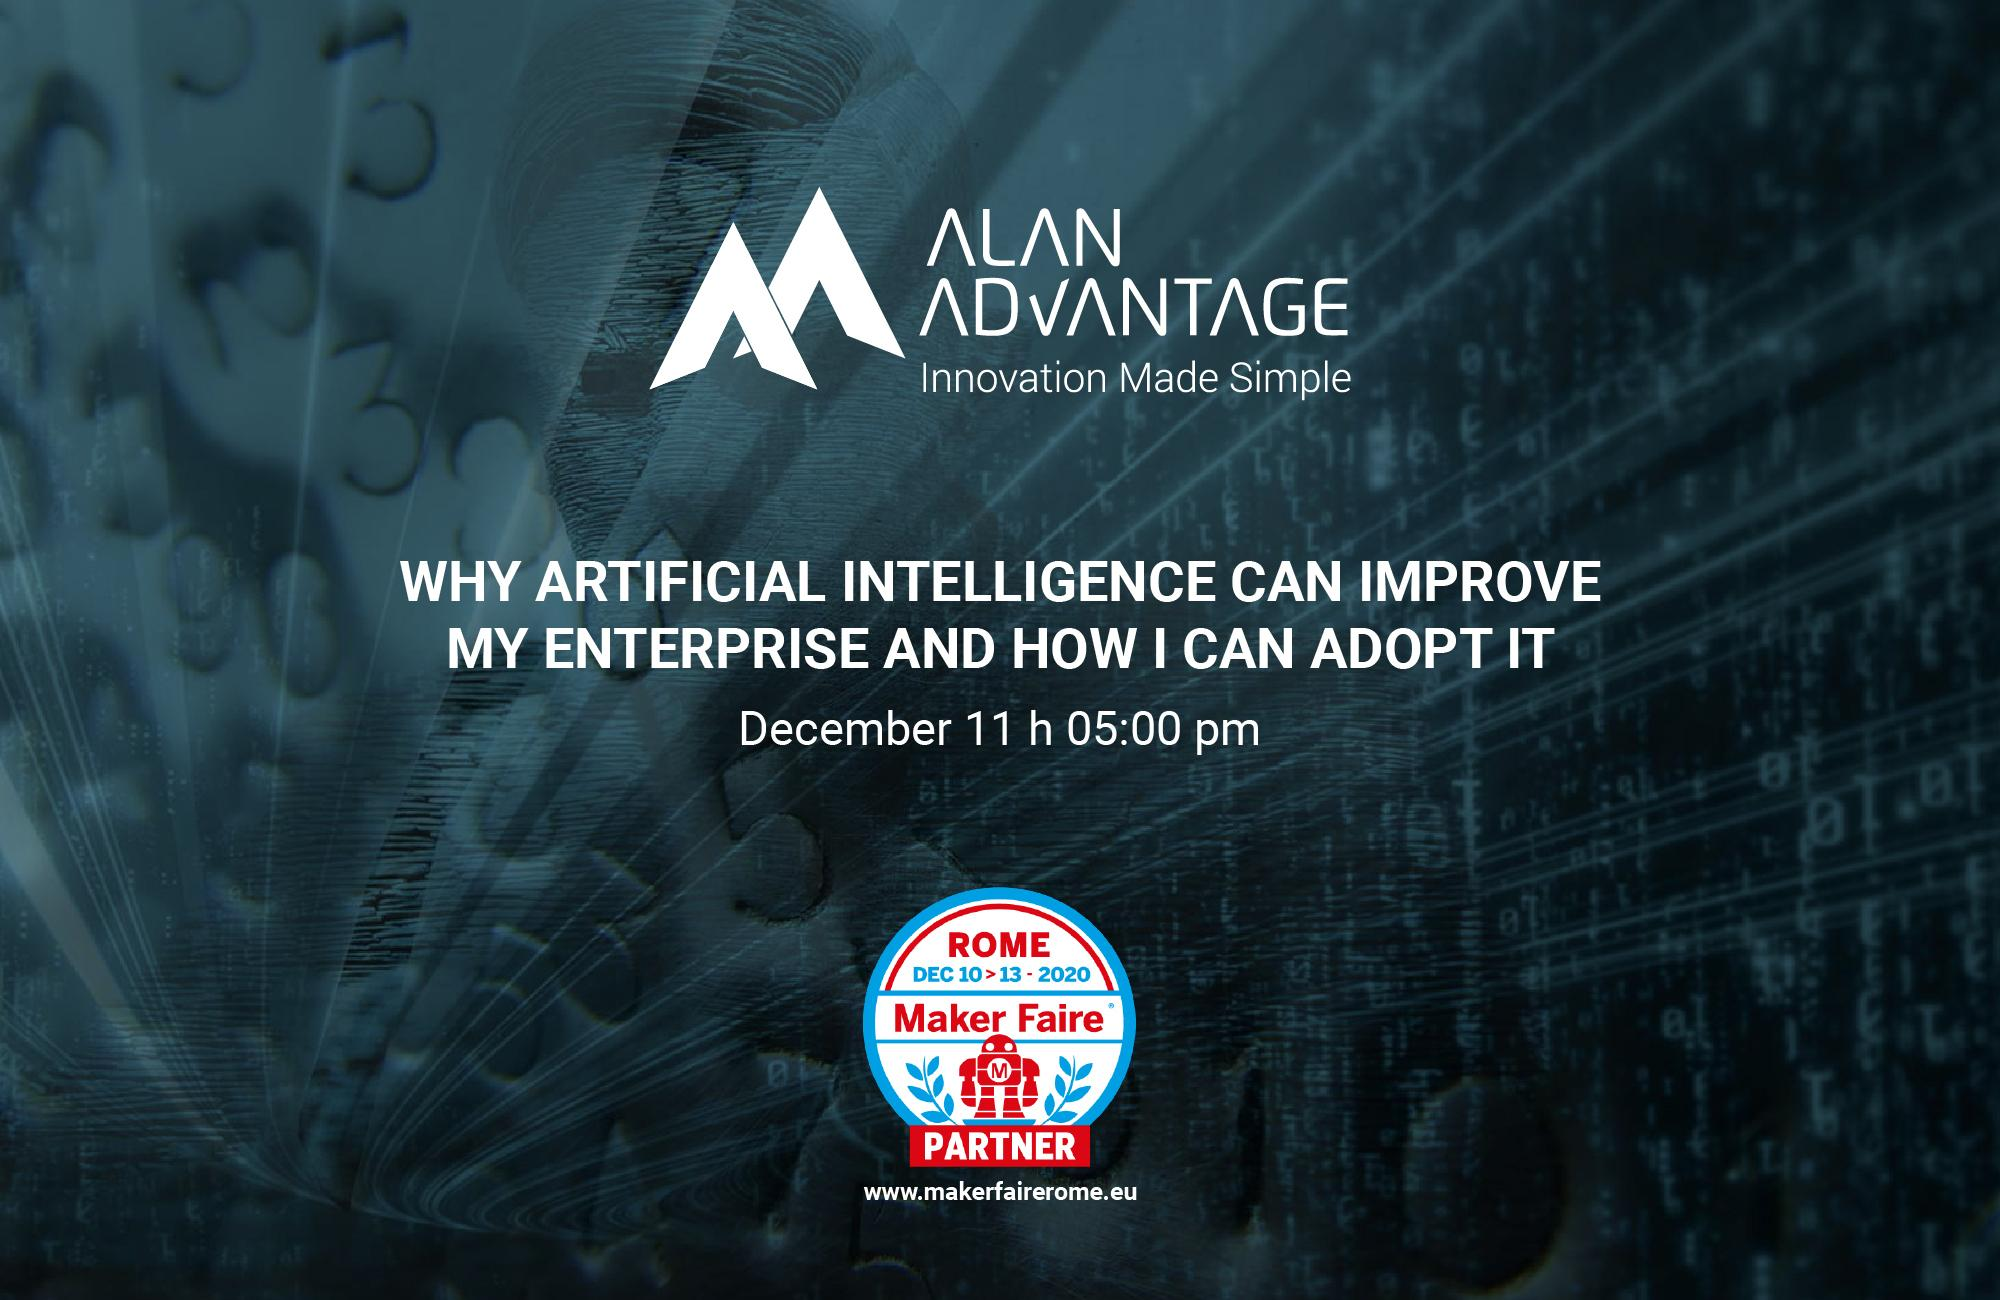 Alan Advantage - Why Artificial Intelligence can improve my Enterprise and how I can adopt it